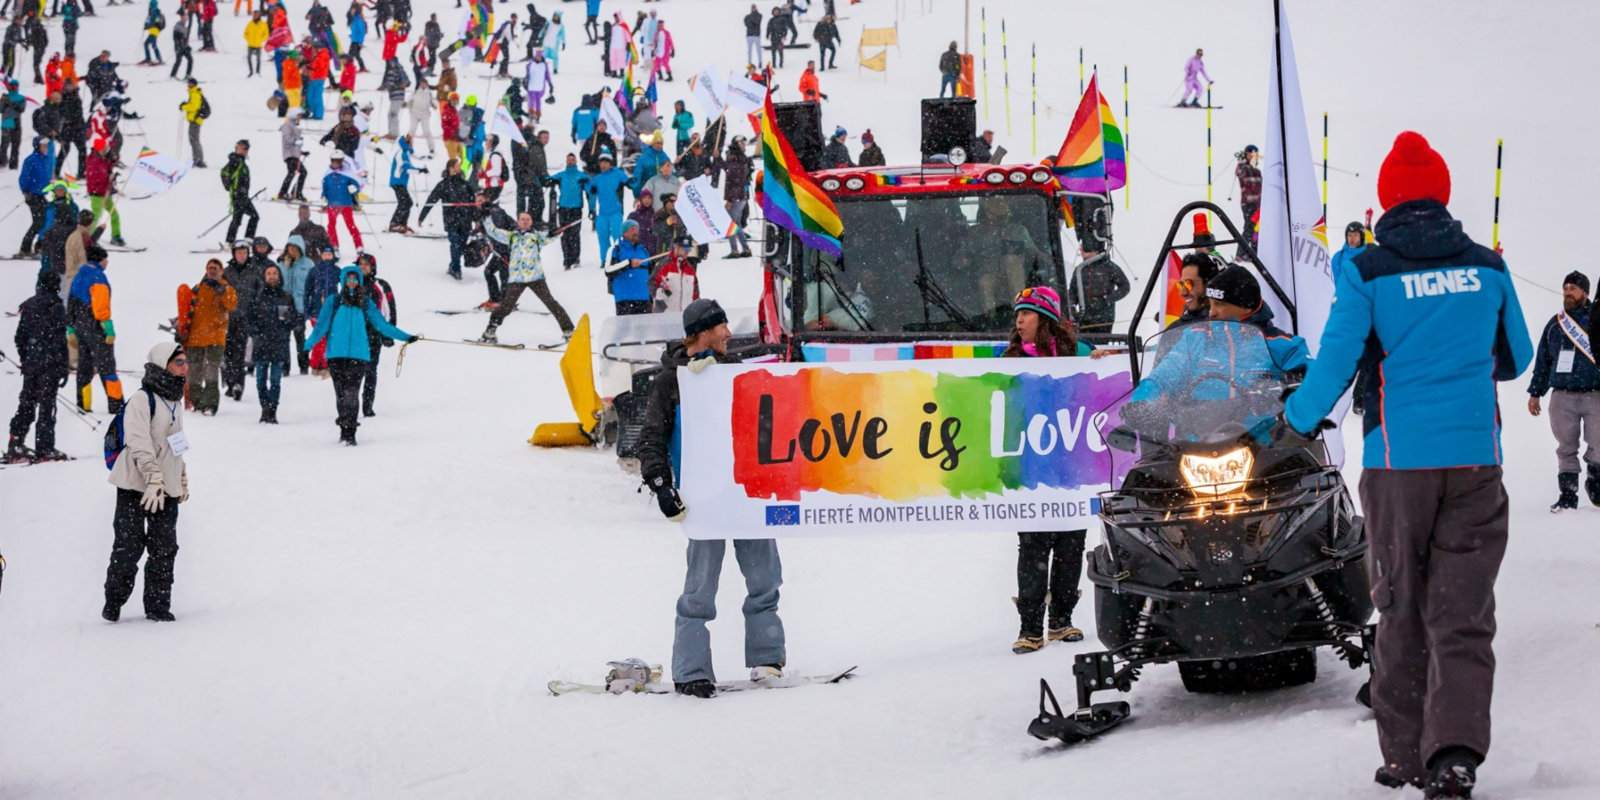 For a gay Pride parade on the ski slopes, plus lots of epic parties, don't miss the European Snow Pride event